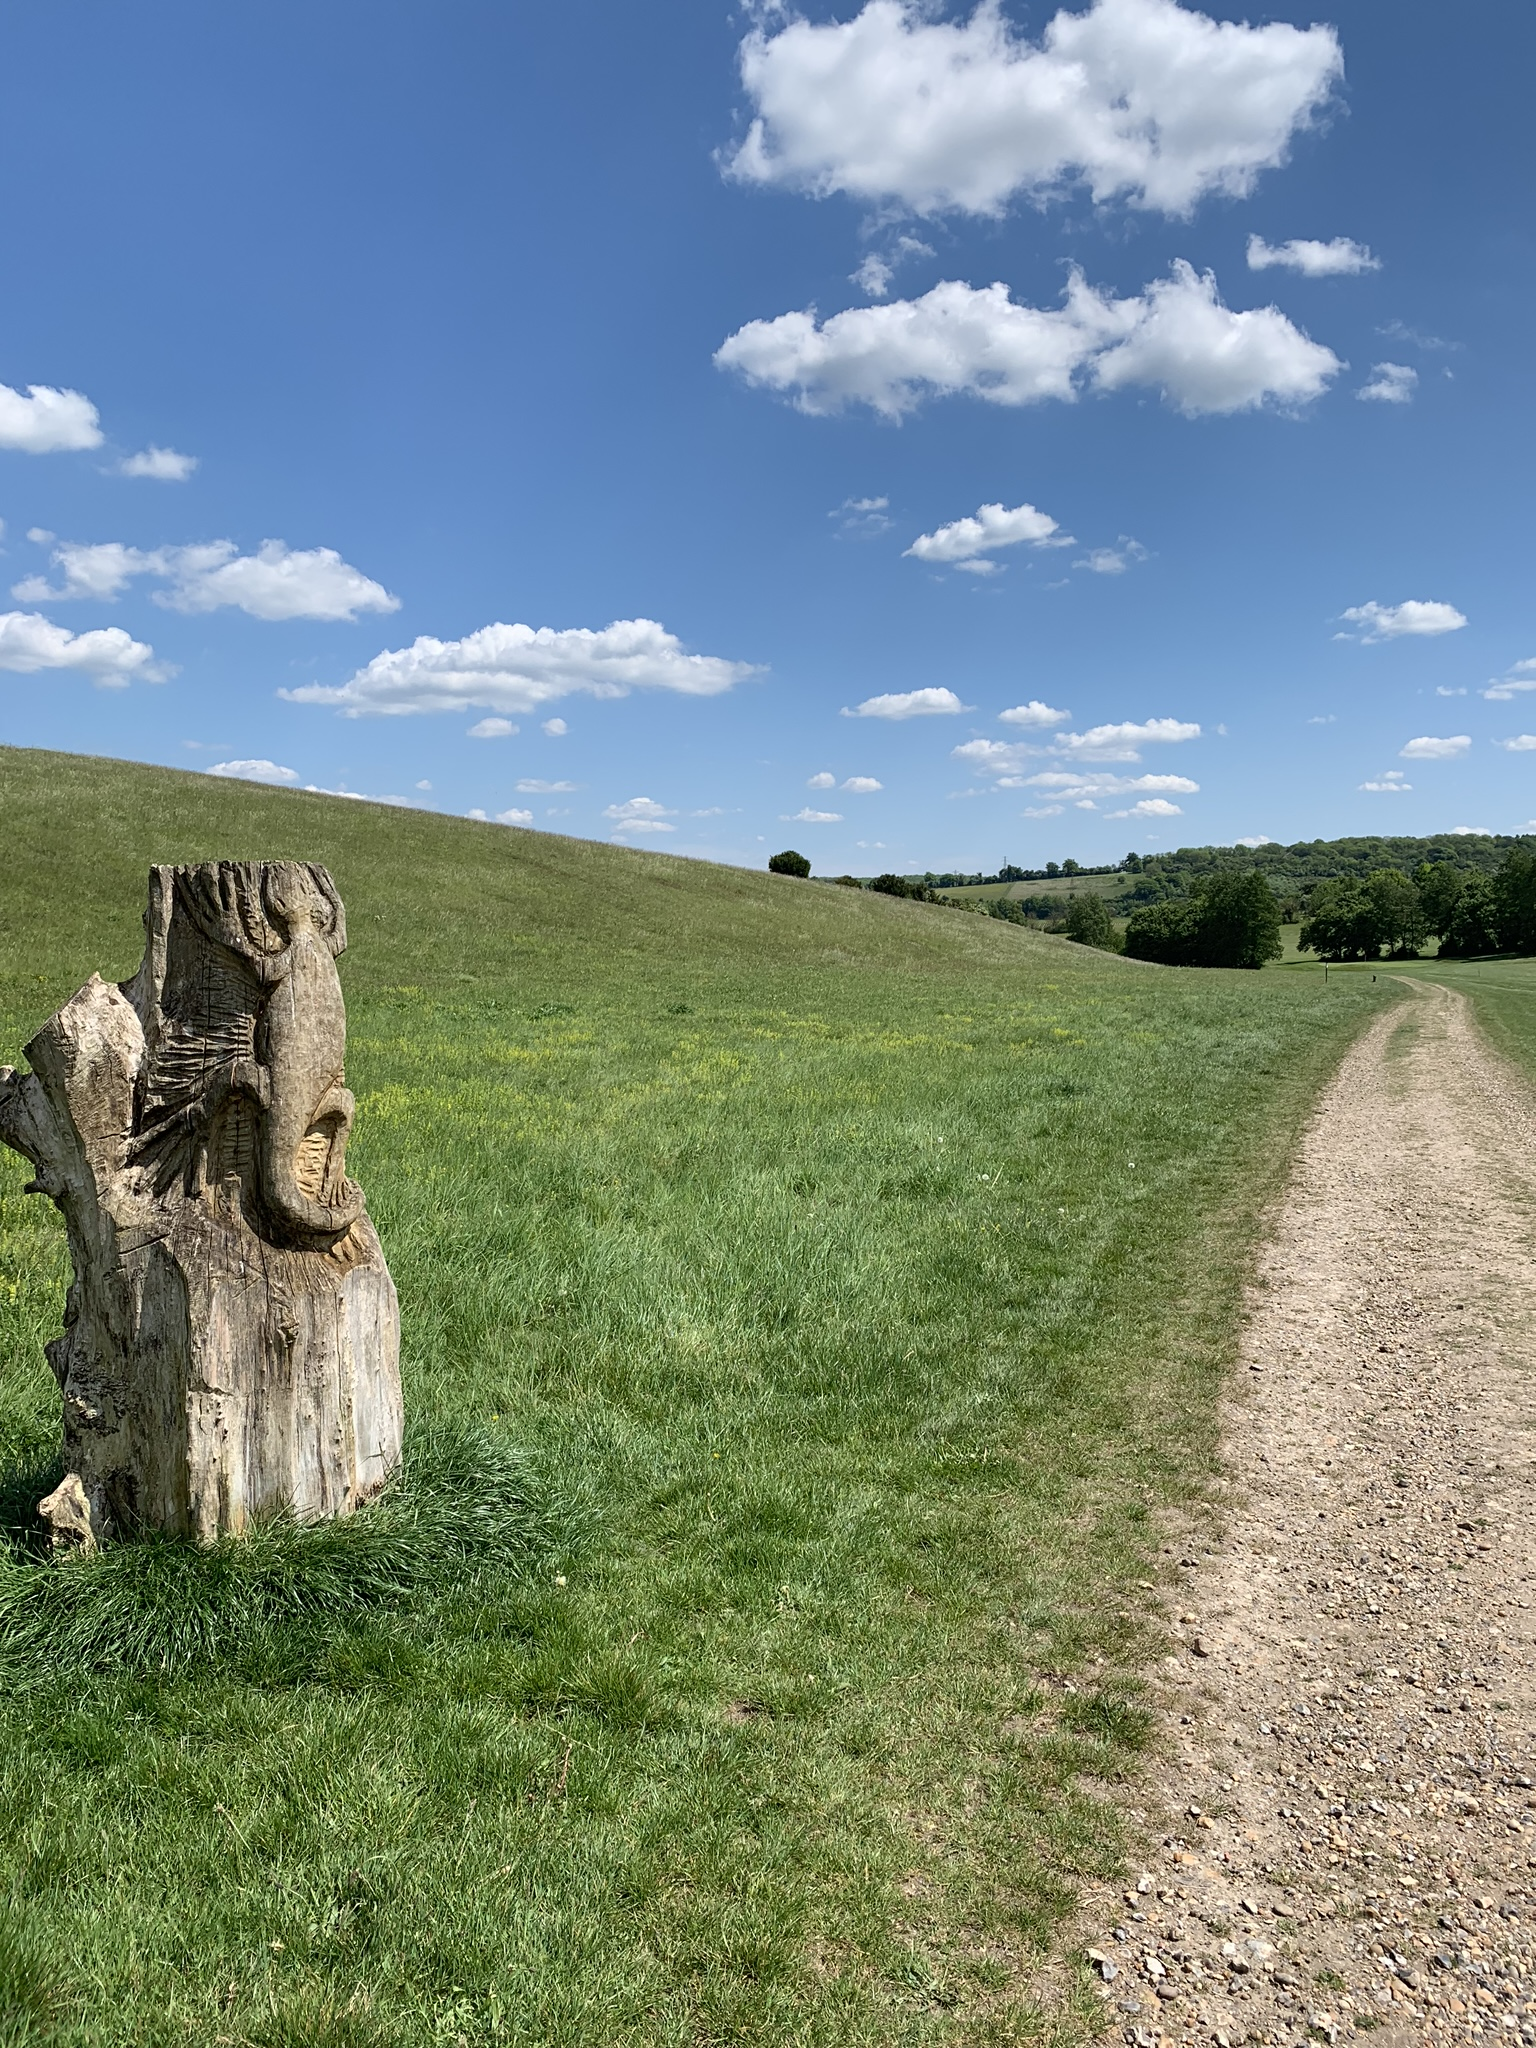 30 Days Wild Day 26: Exploring Lullingstone Country Park in Kent